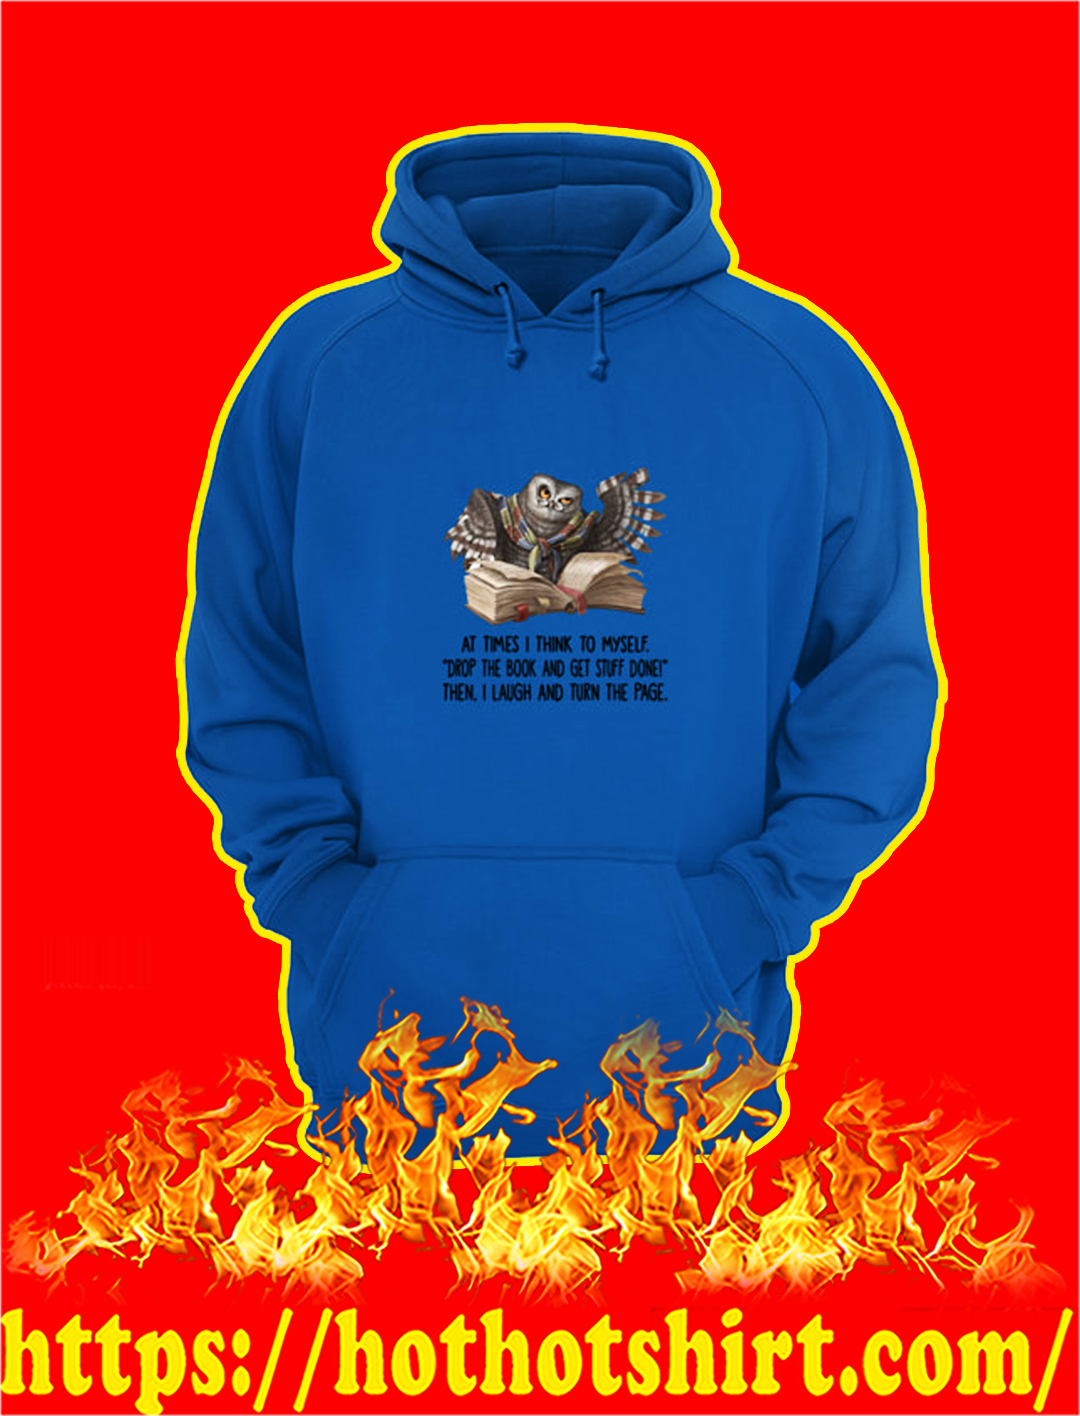 At Times I Think To Myself Drop The Book hoodie